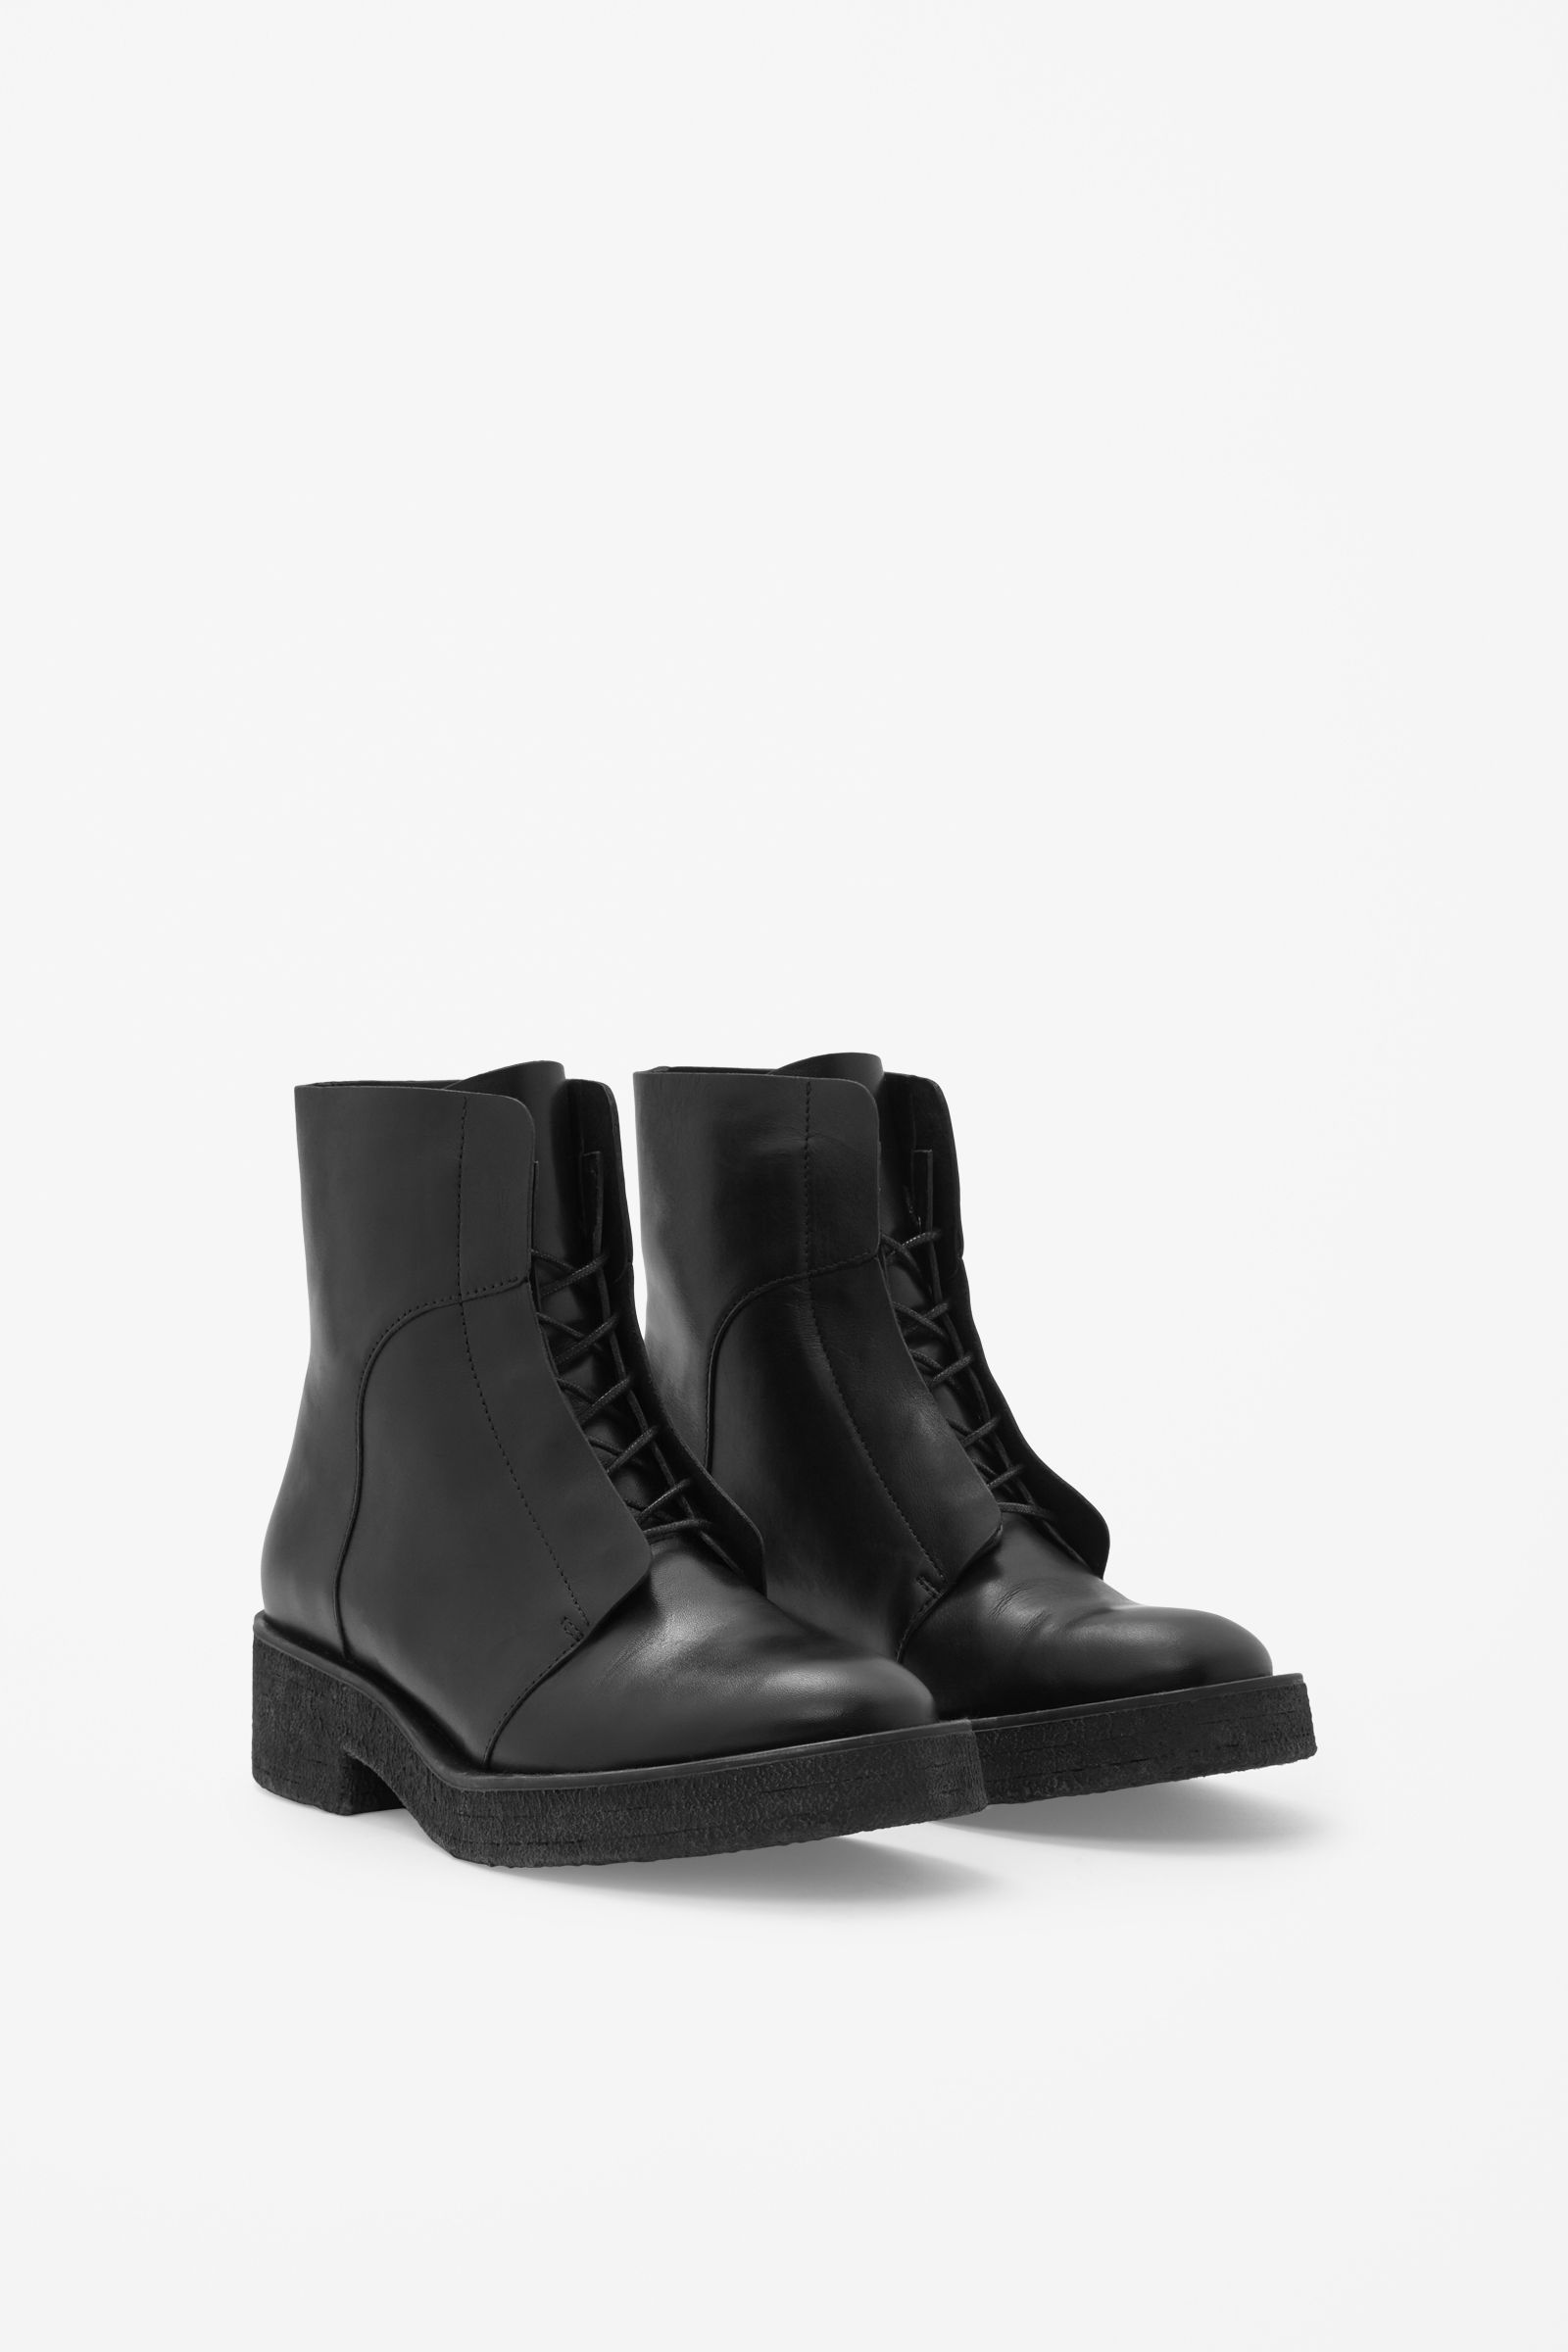 789493deb8d5 Lace-up leather boots - COS   FASHUN   Boots, Leather boots, Shoes